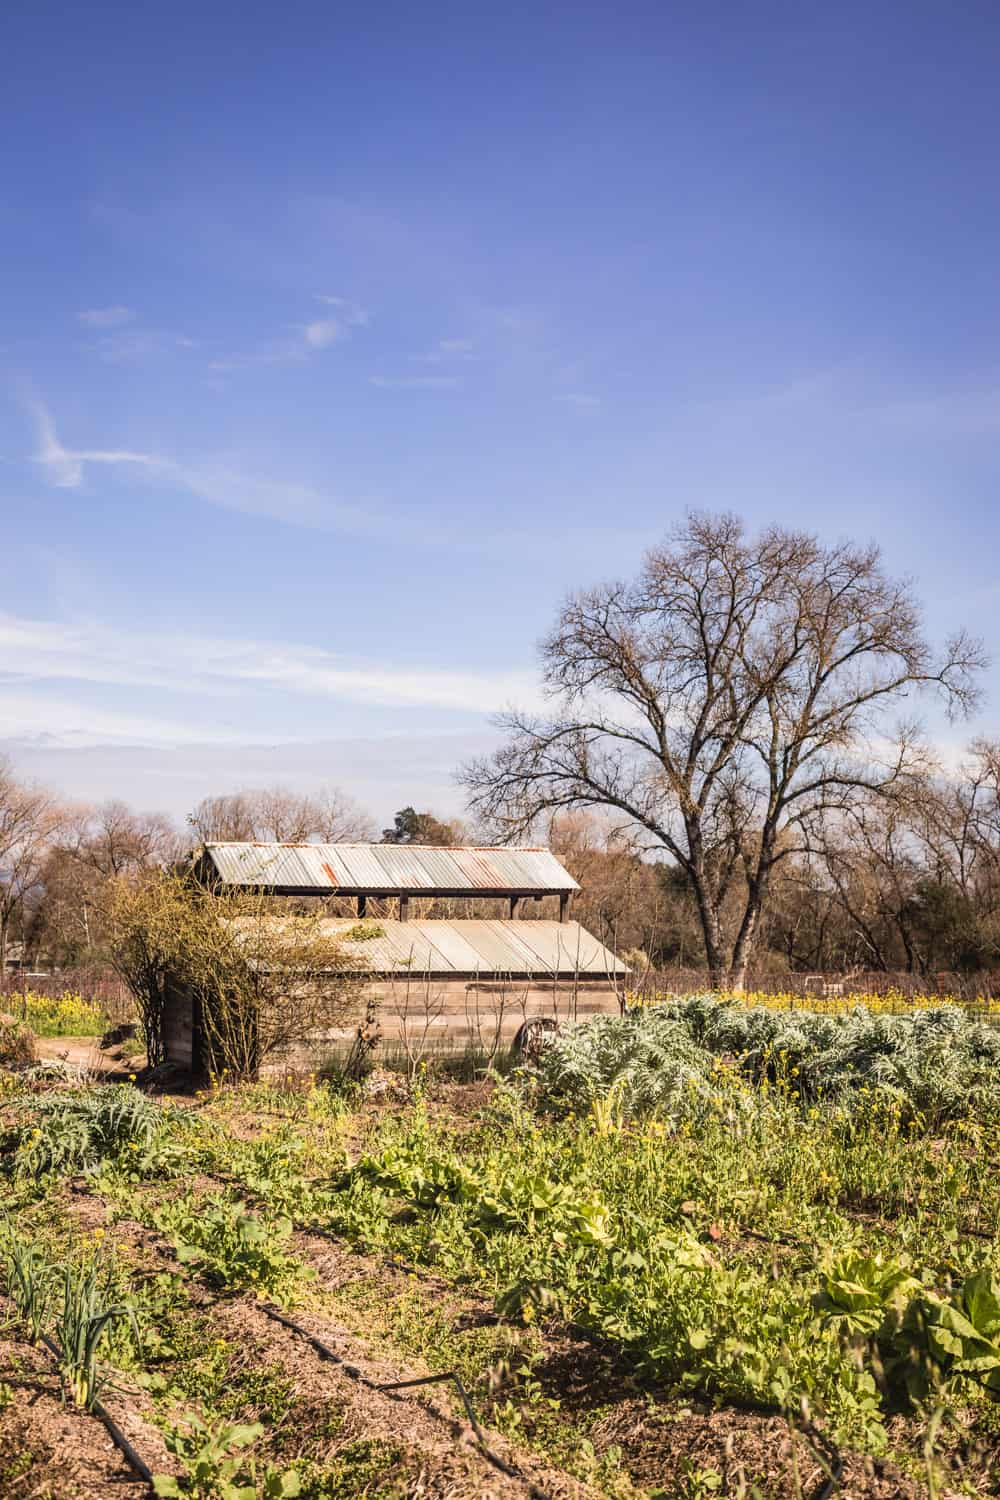 Wooden shack and veggie growing on Davero's biodynamic farm and winery.